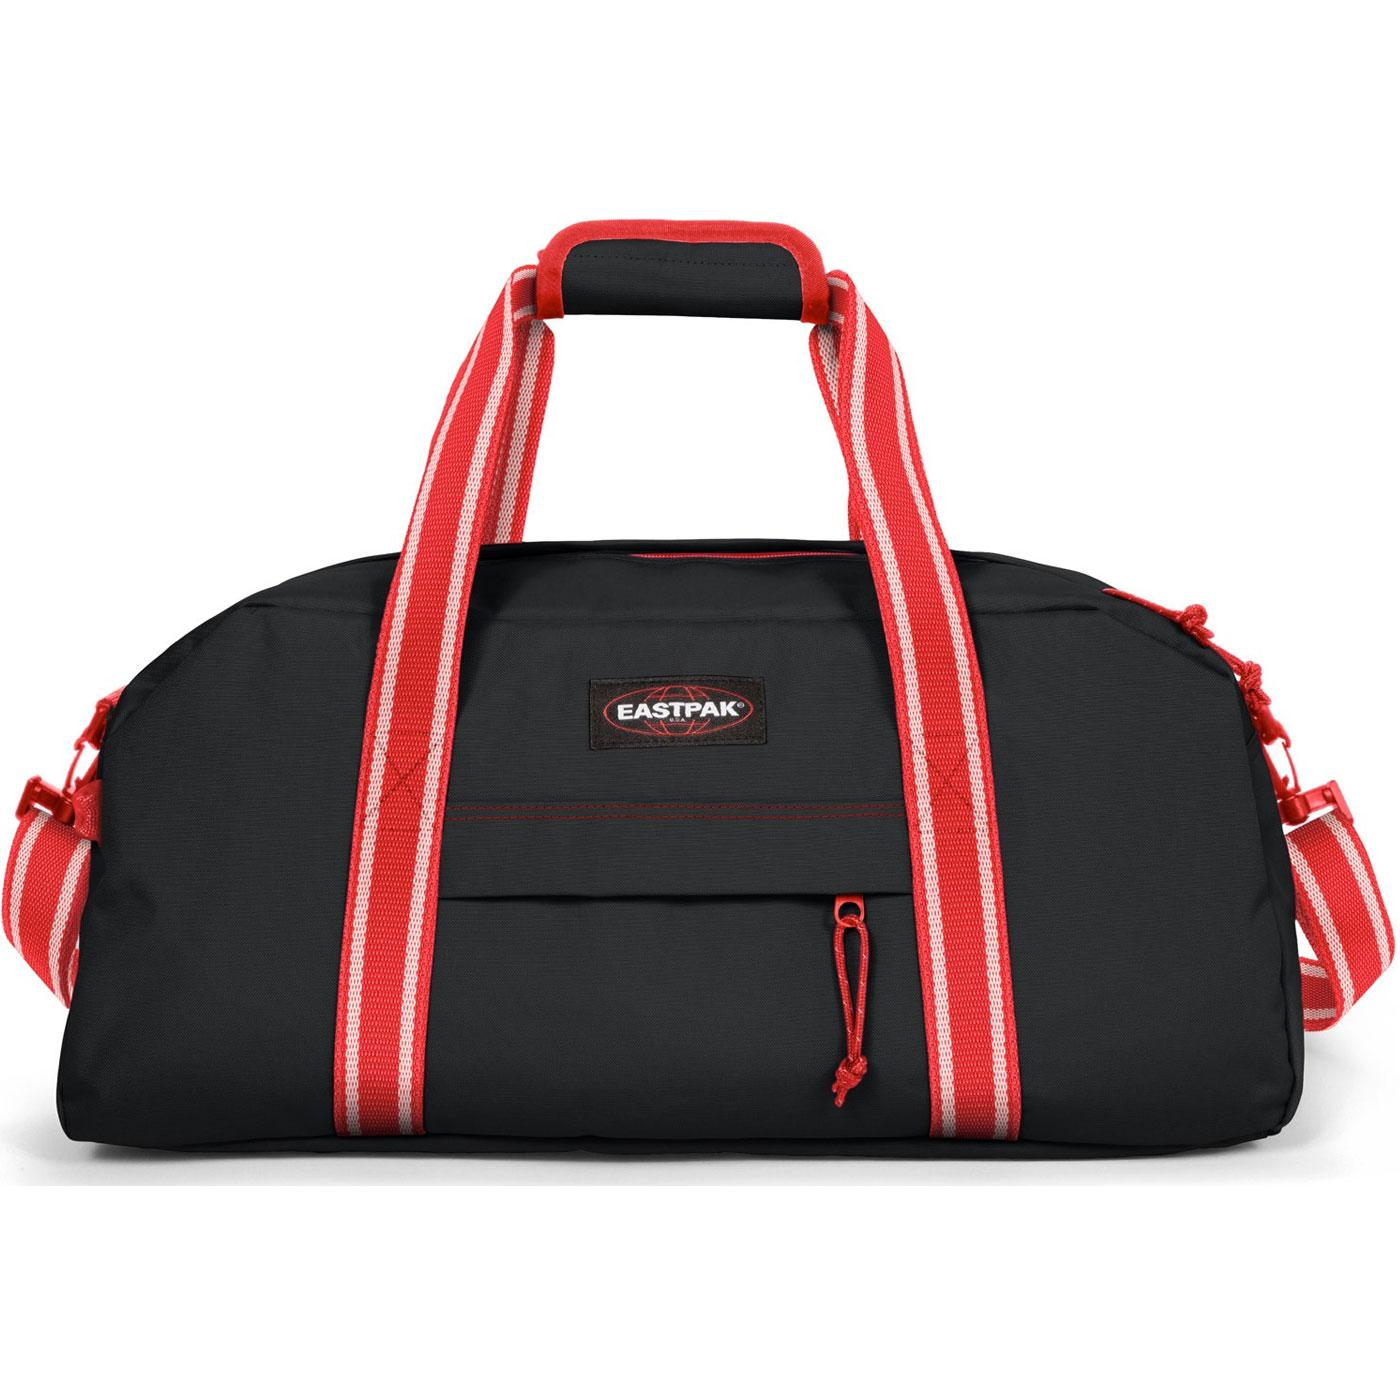 Stand+ EASTPAK Retro Mod Holdall Bag BLACKOUT DARK